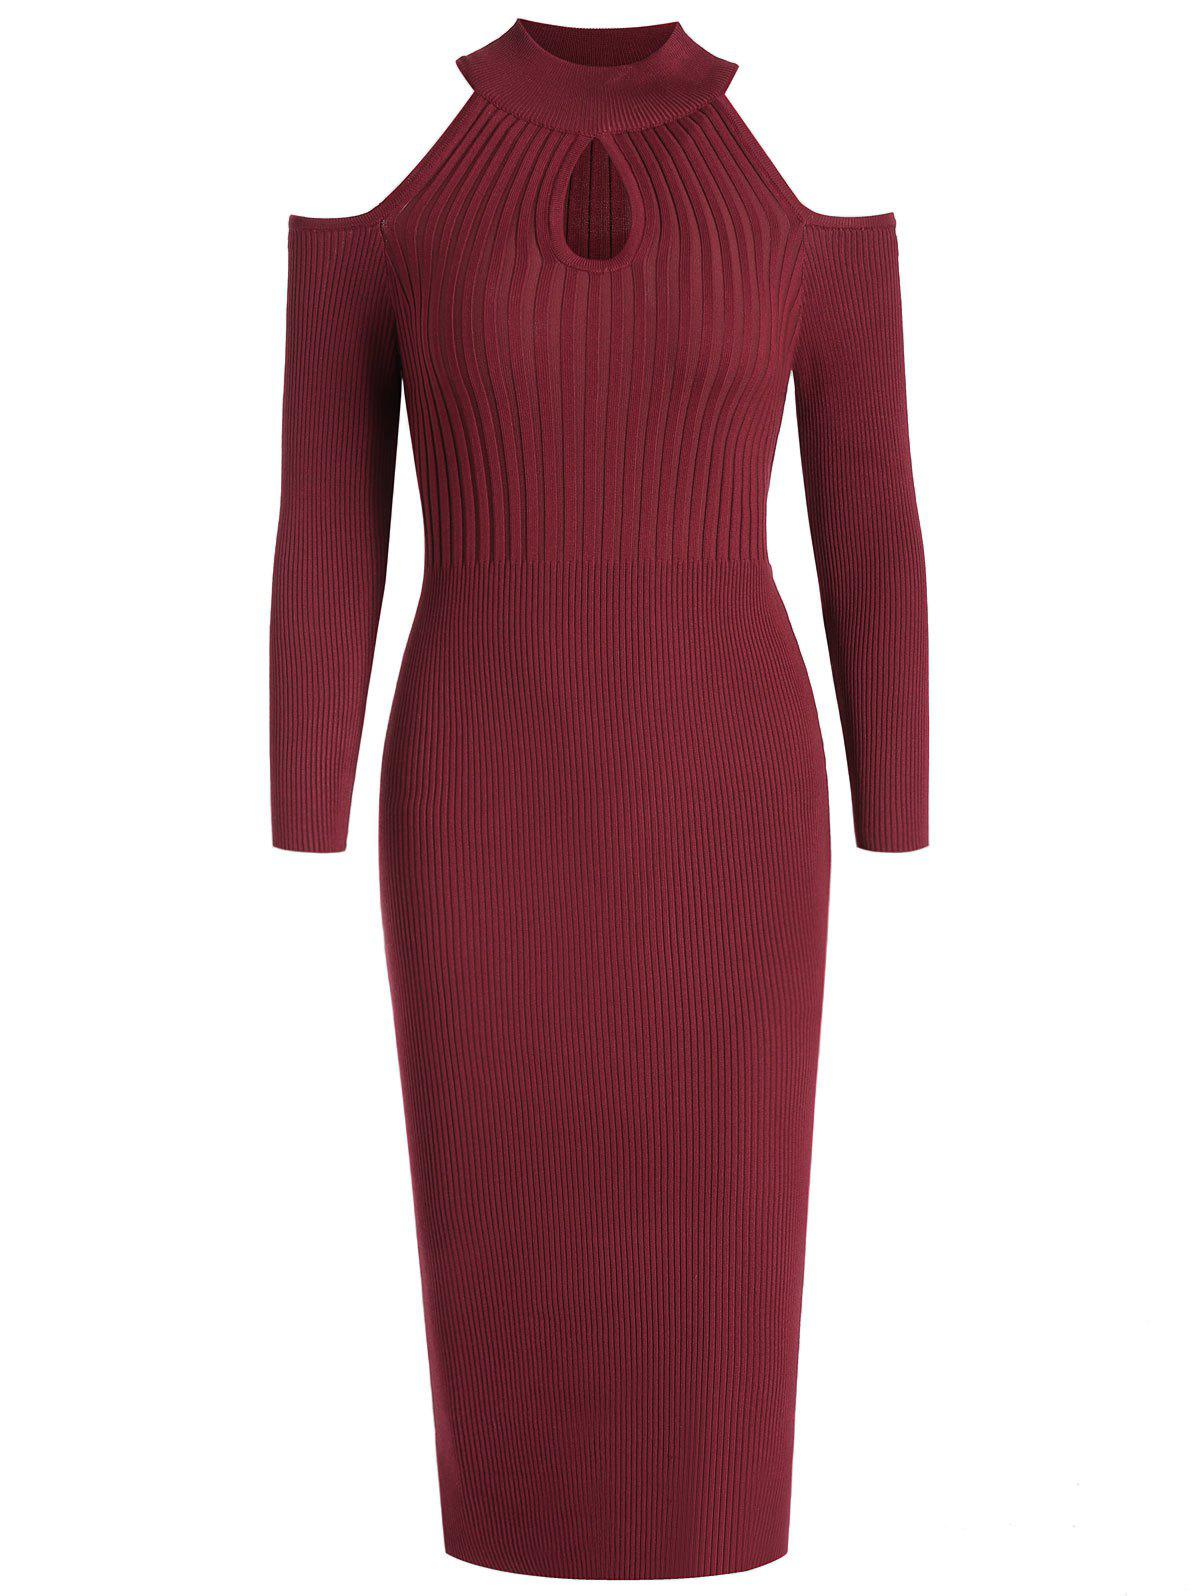 Unique Women's Stand Collar Dew Shoulder Long Sleeved Bodycon Dress